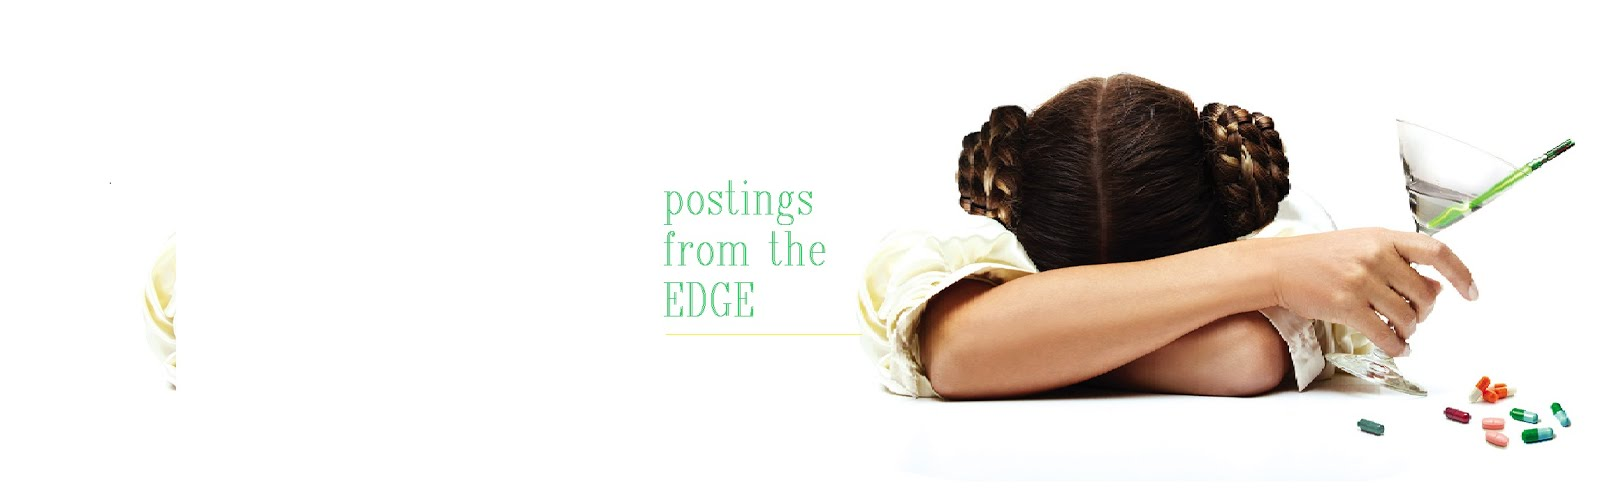 Postings from the EDGE